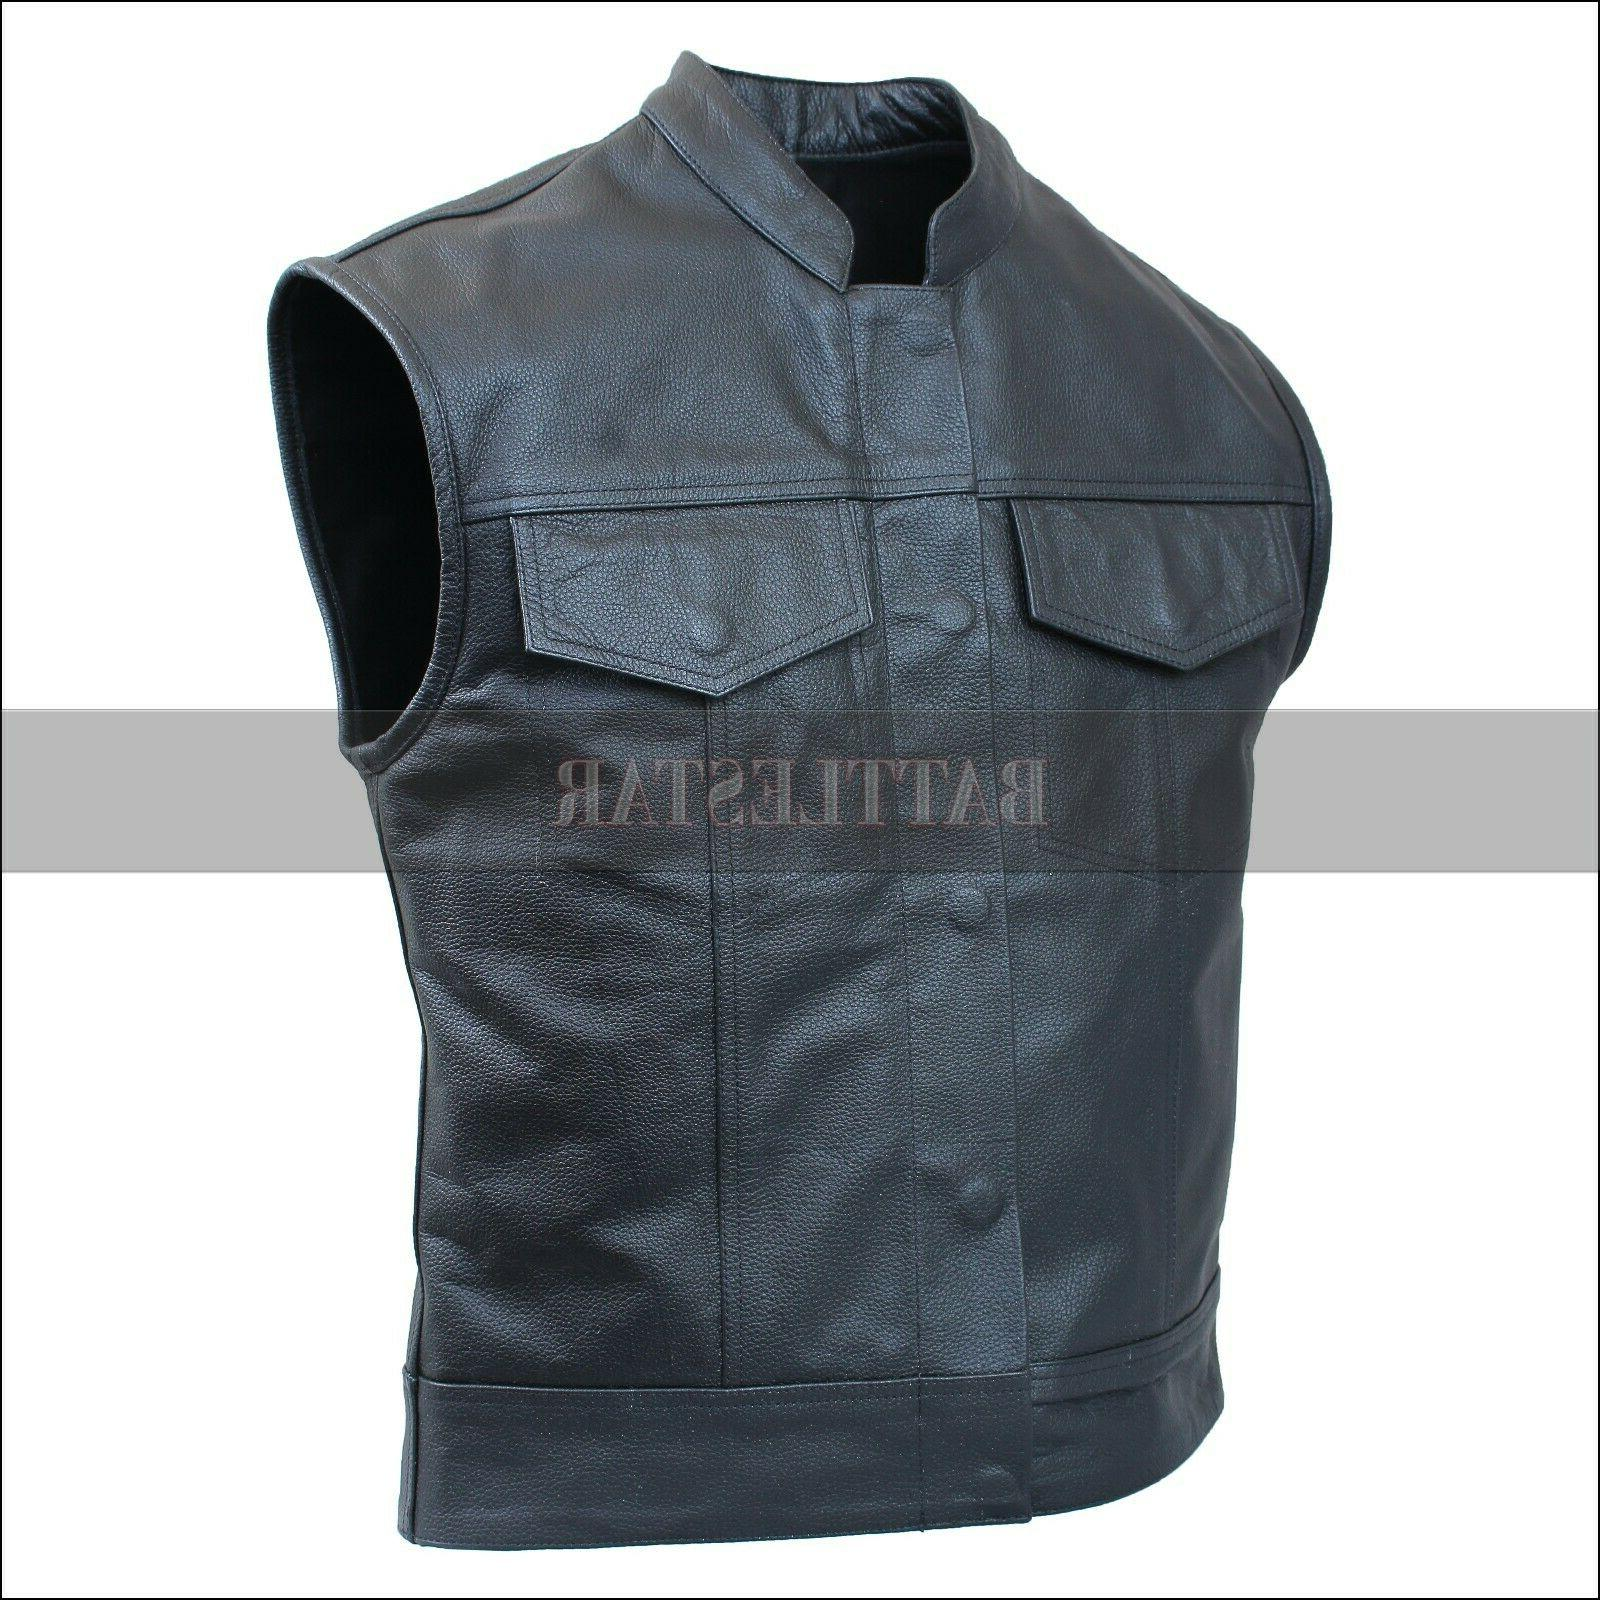 Battlestar Trend Pure For Motorcycle Riders